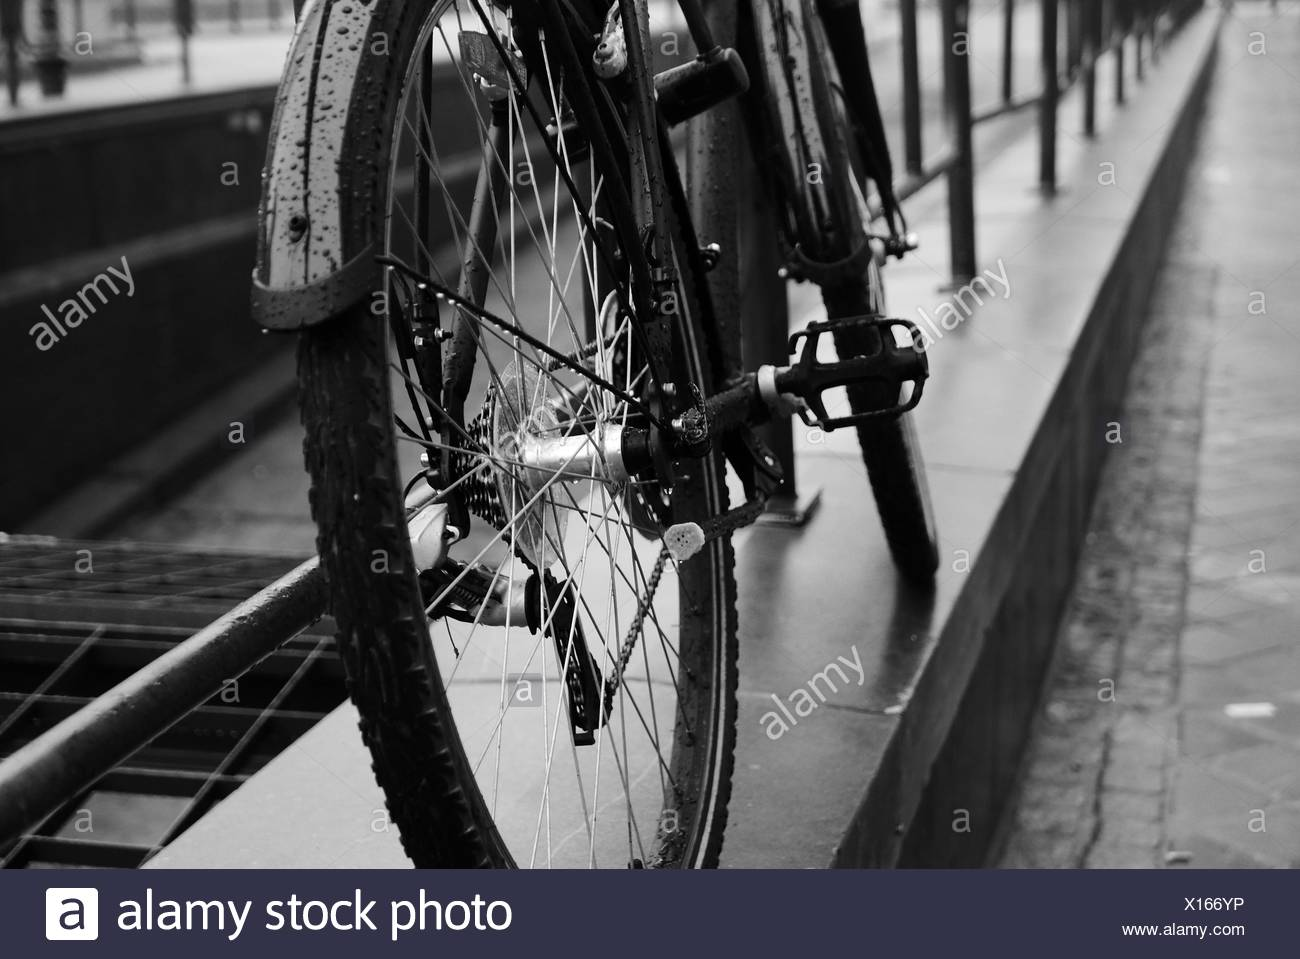 High Angle View Of Bicycle Parked At Railing - Stock Image